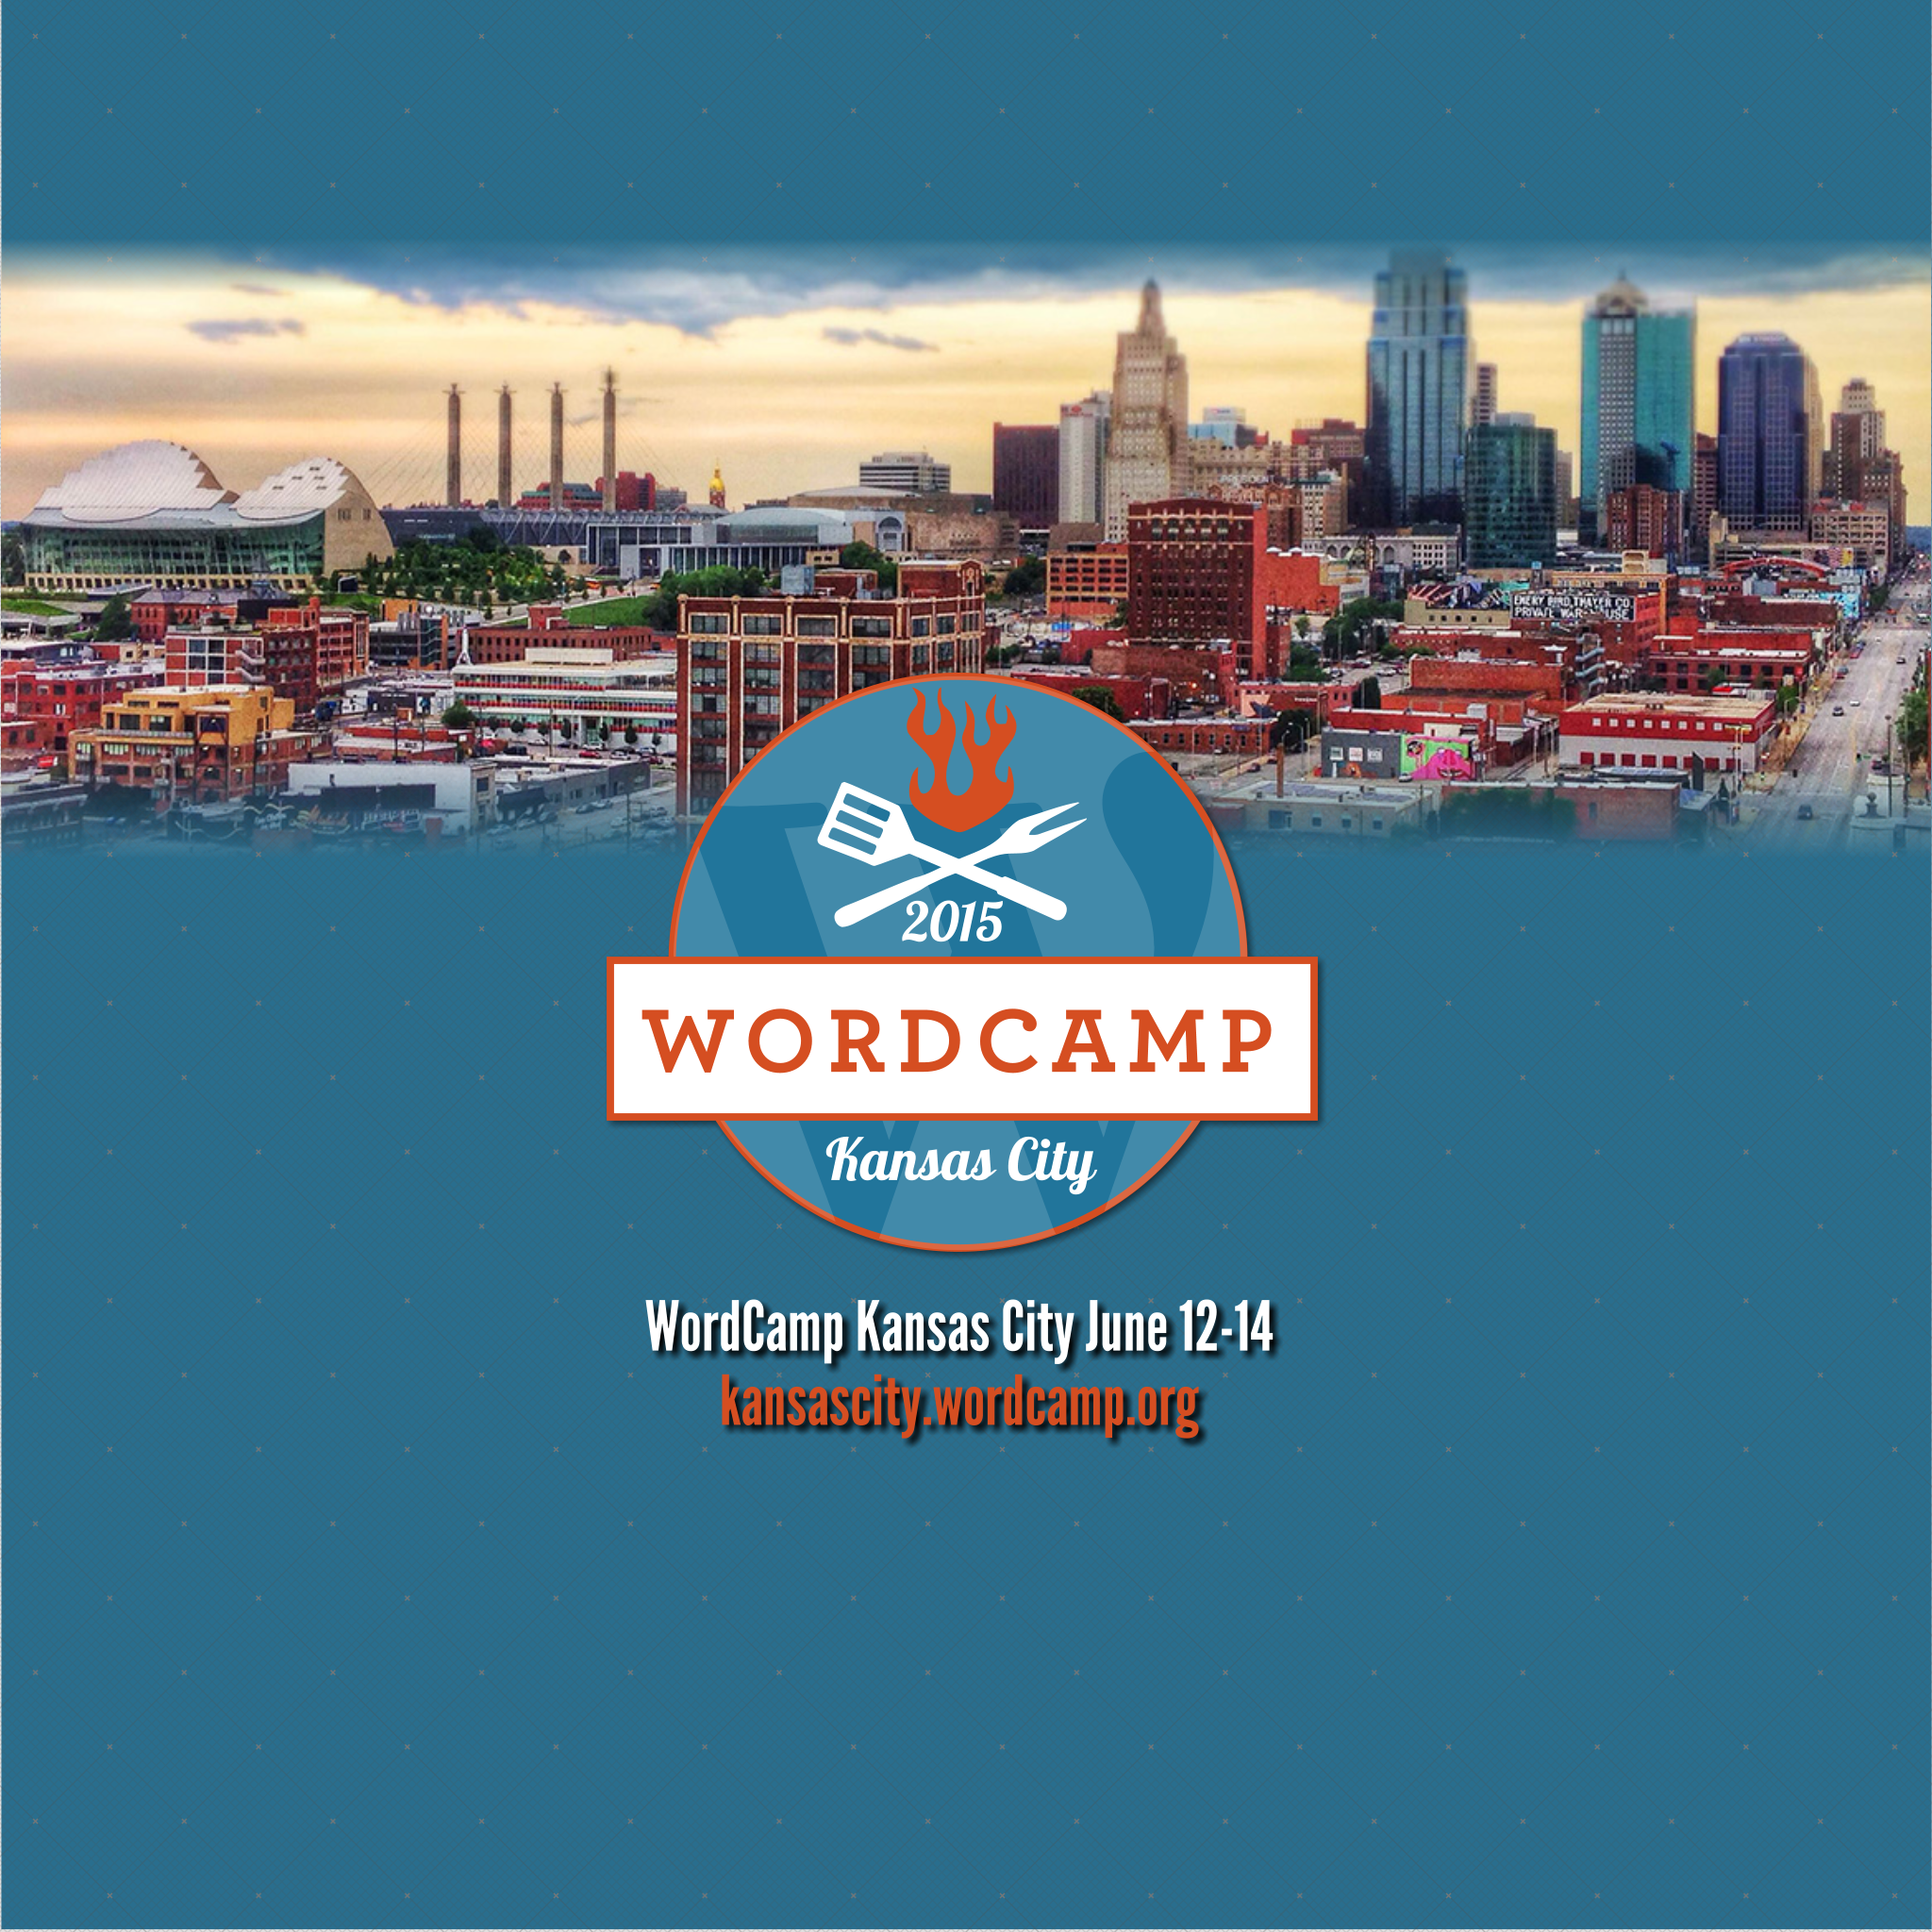 WordCampKC2015_Wallpaper2048x2048